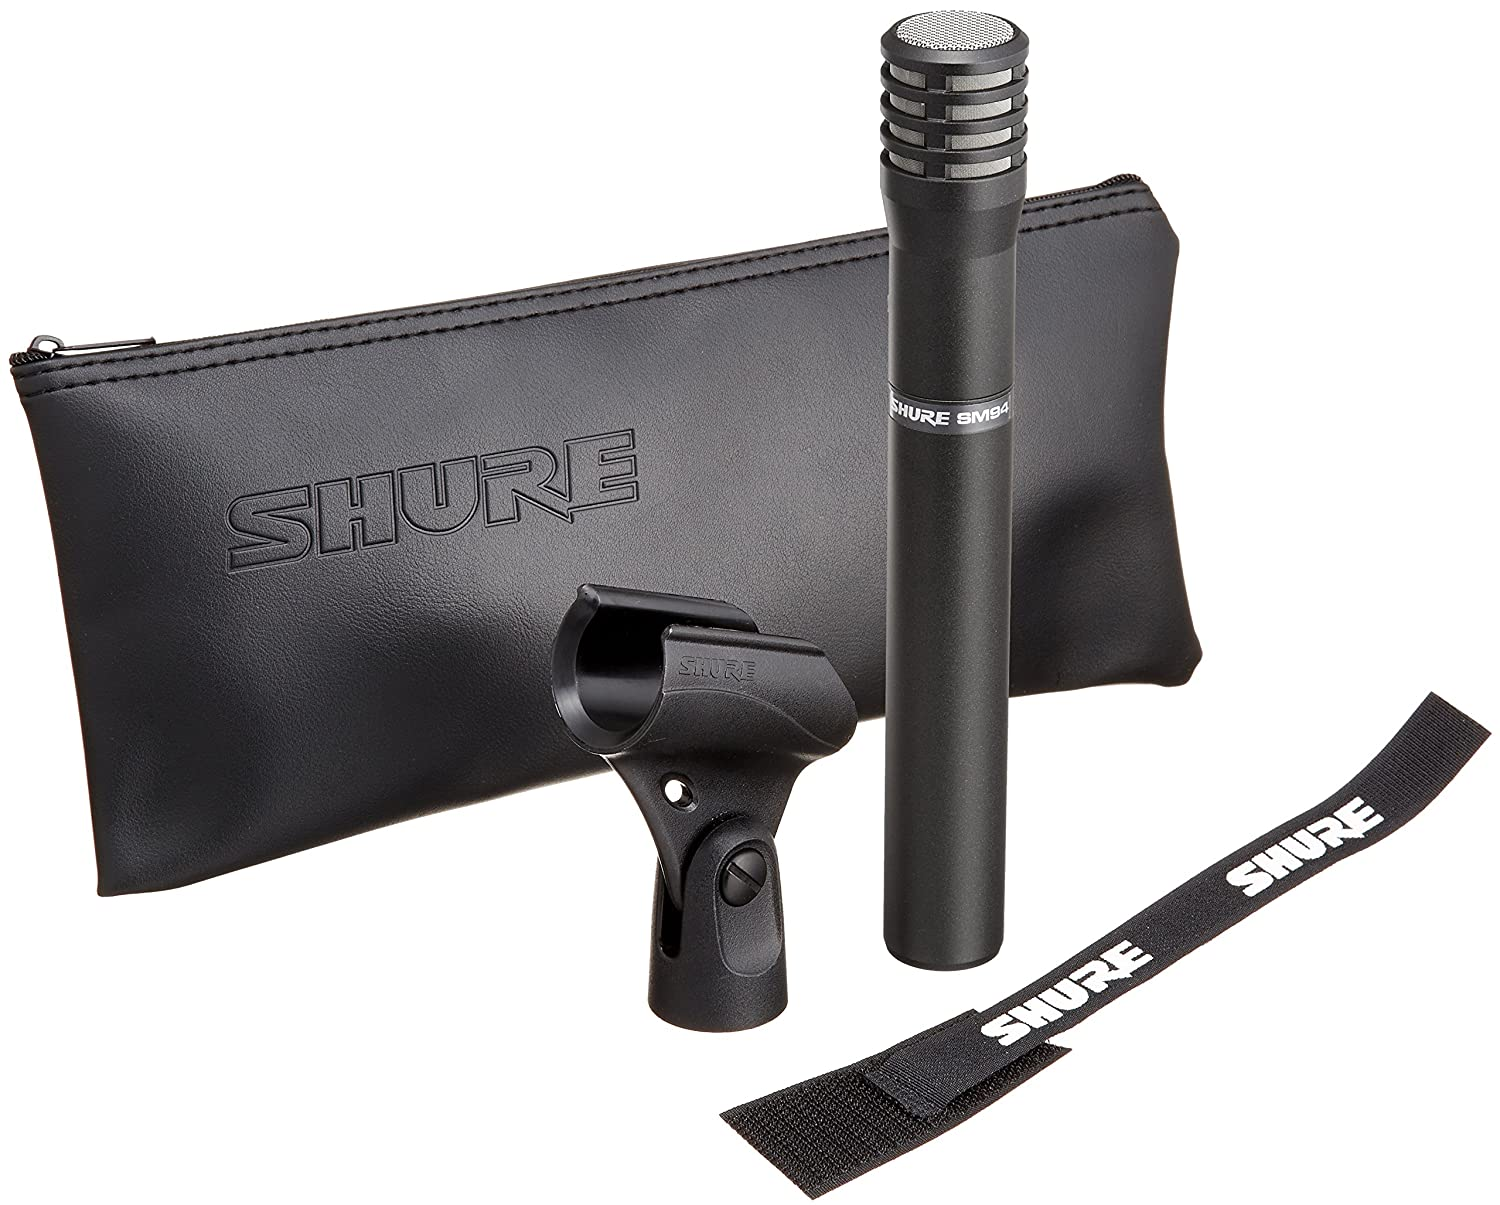 Amazon.com: Shure SM94 Instrument Microphone: Musical Instruments